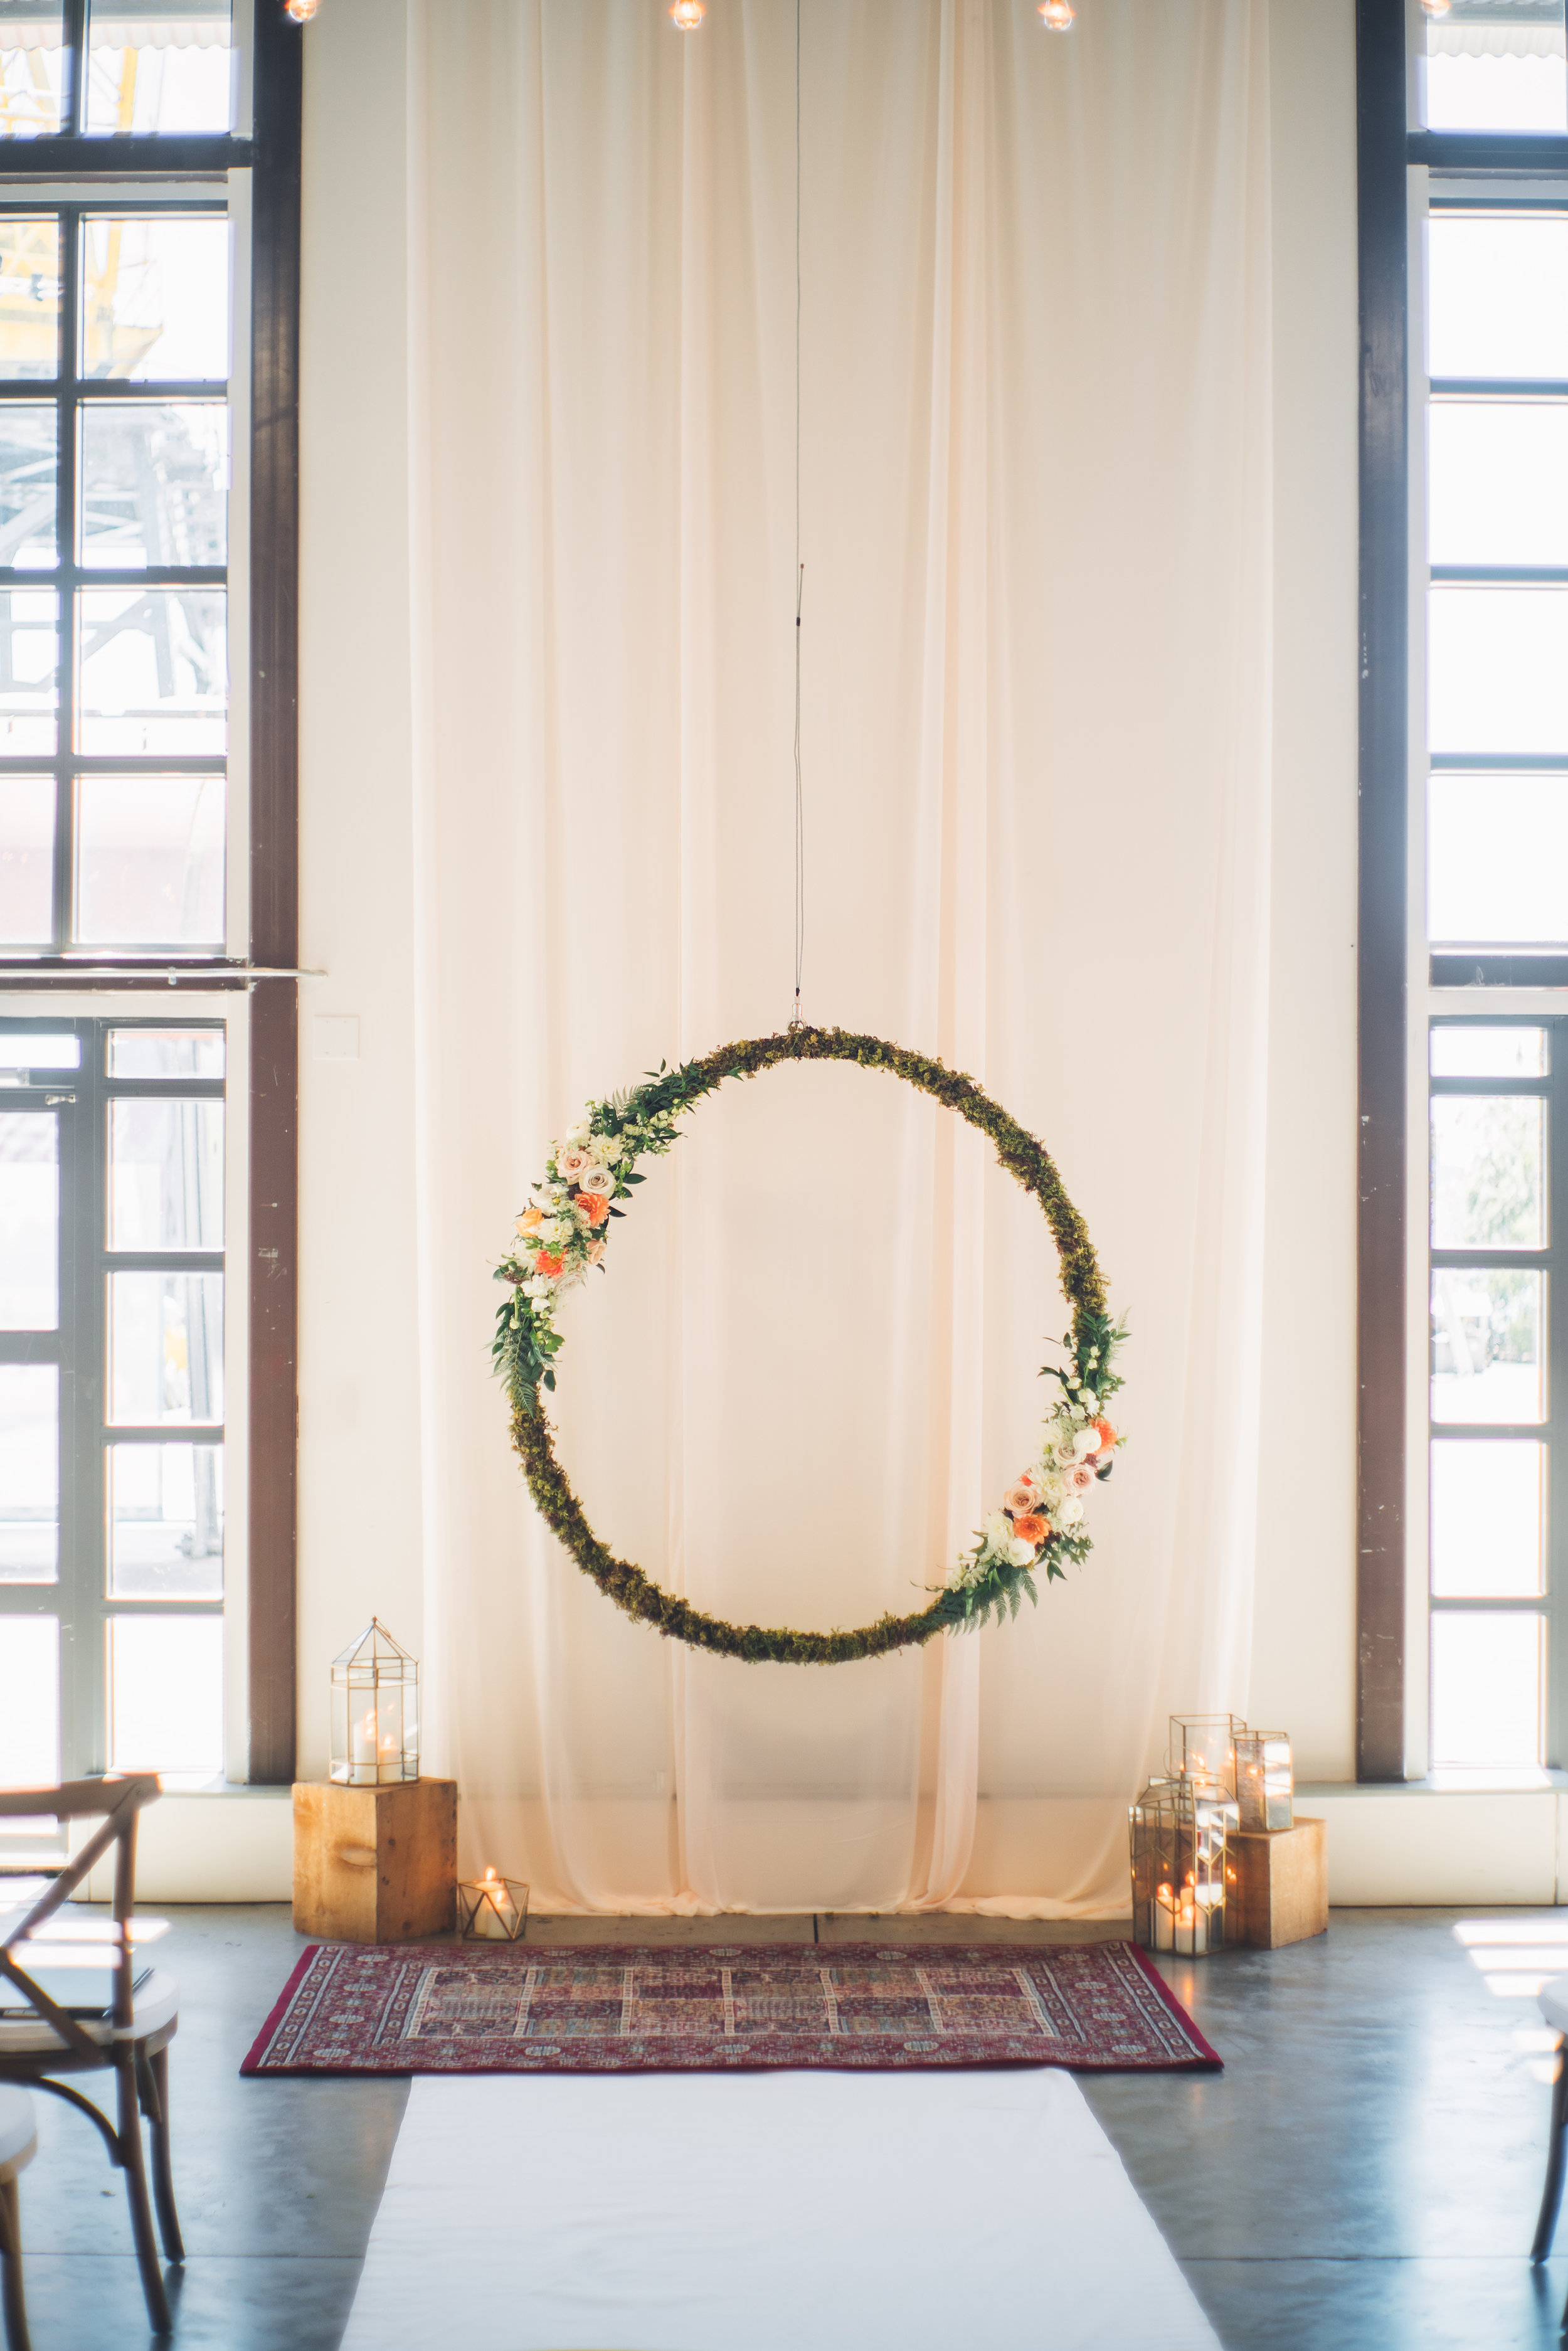 (Large) 5' greenery hoop (small) 3' greenery hoop   Quantity: (L - 1) , (s- 3)  Price: $450.00 - $150